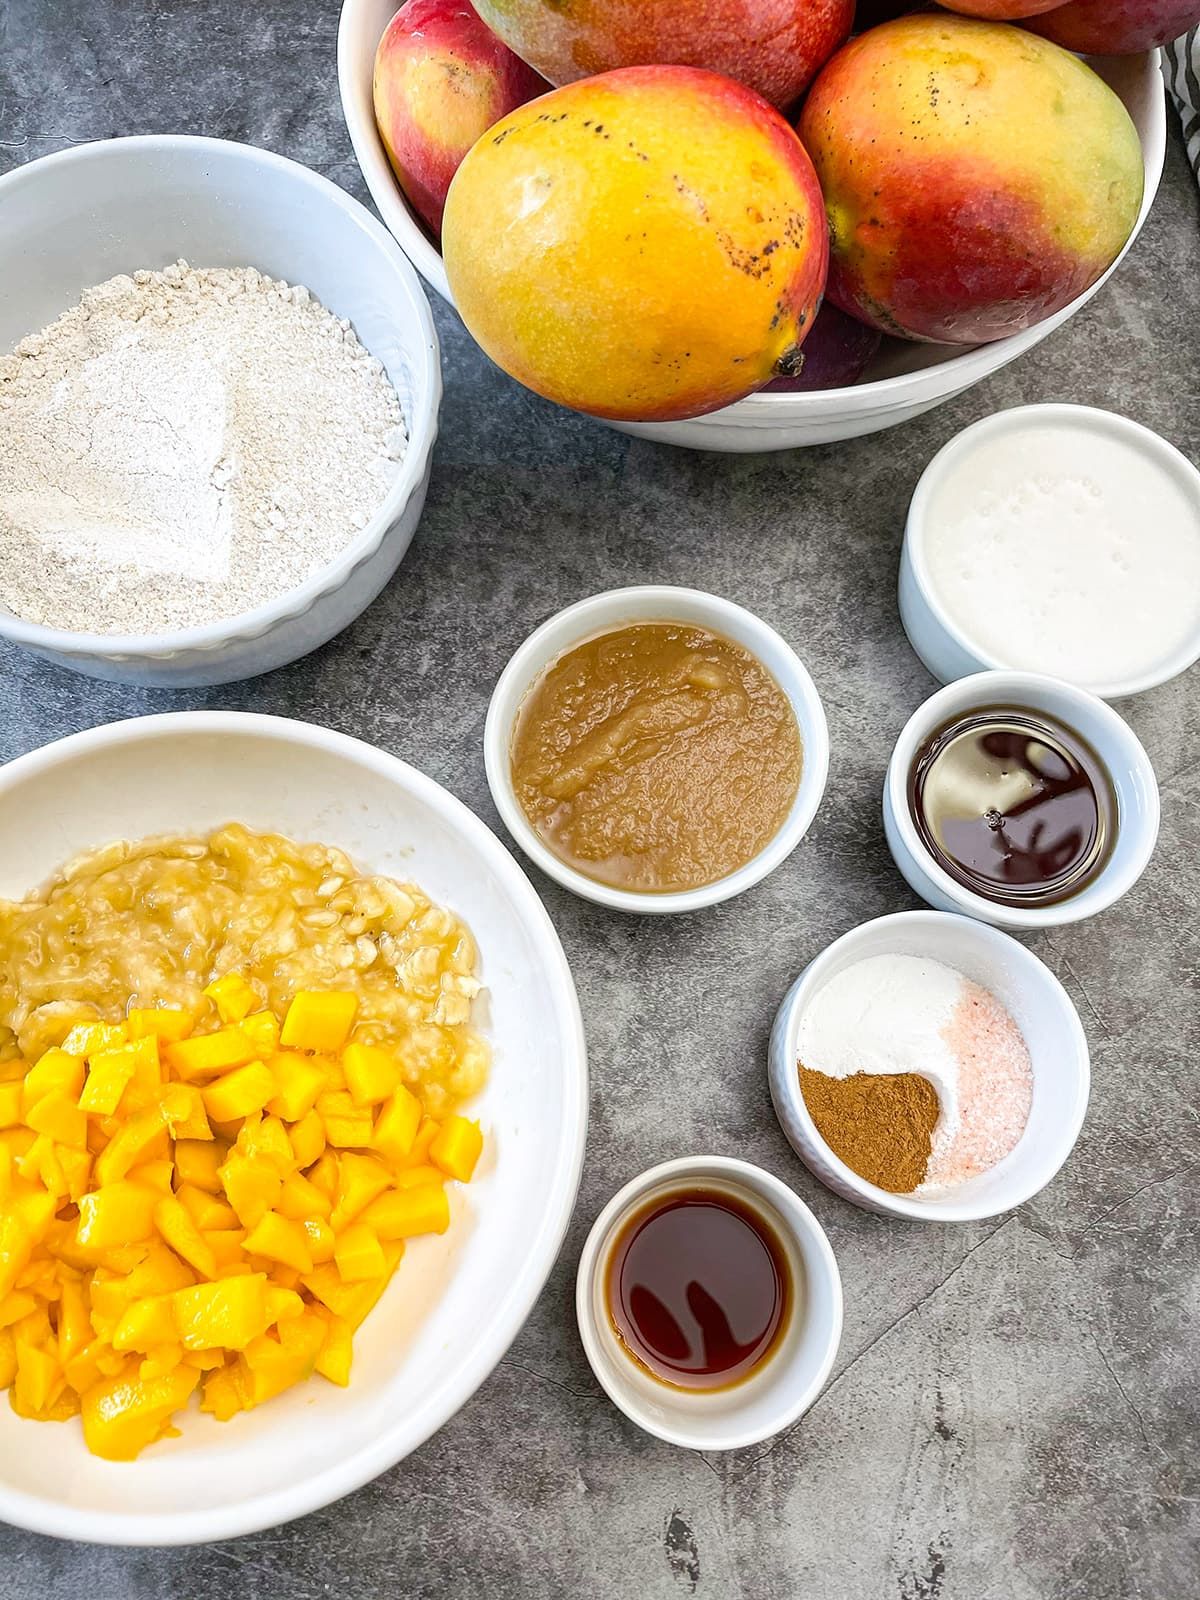 mango muffin ingredients on a grey background in white bowls